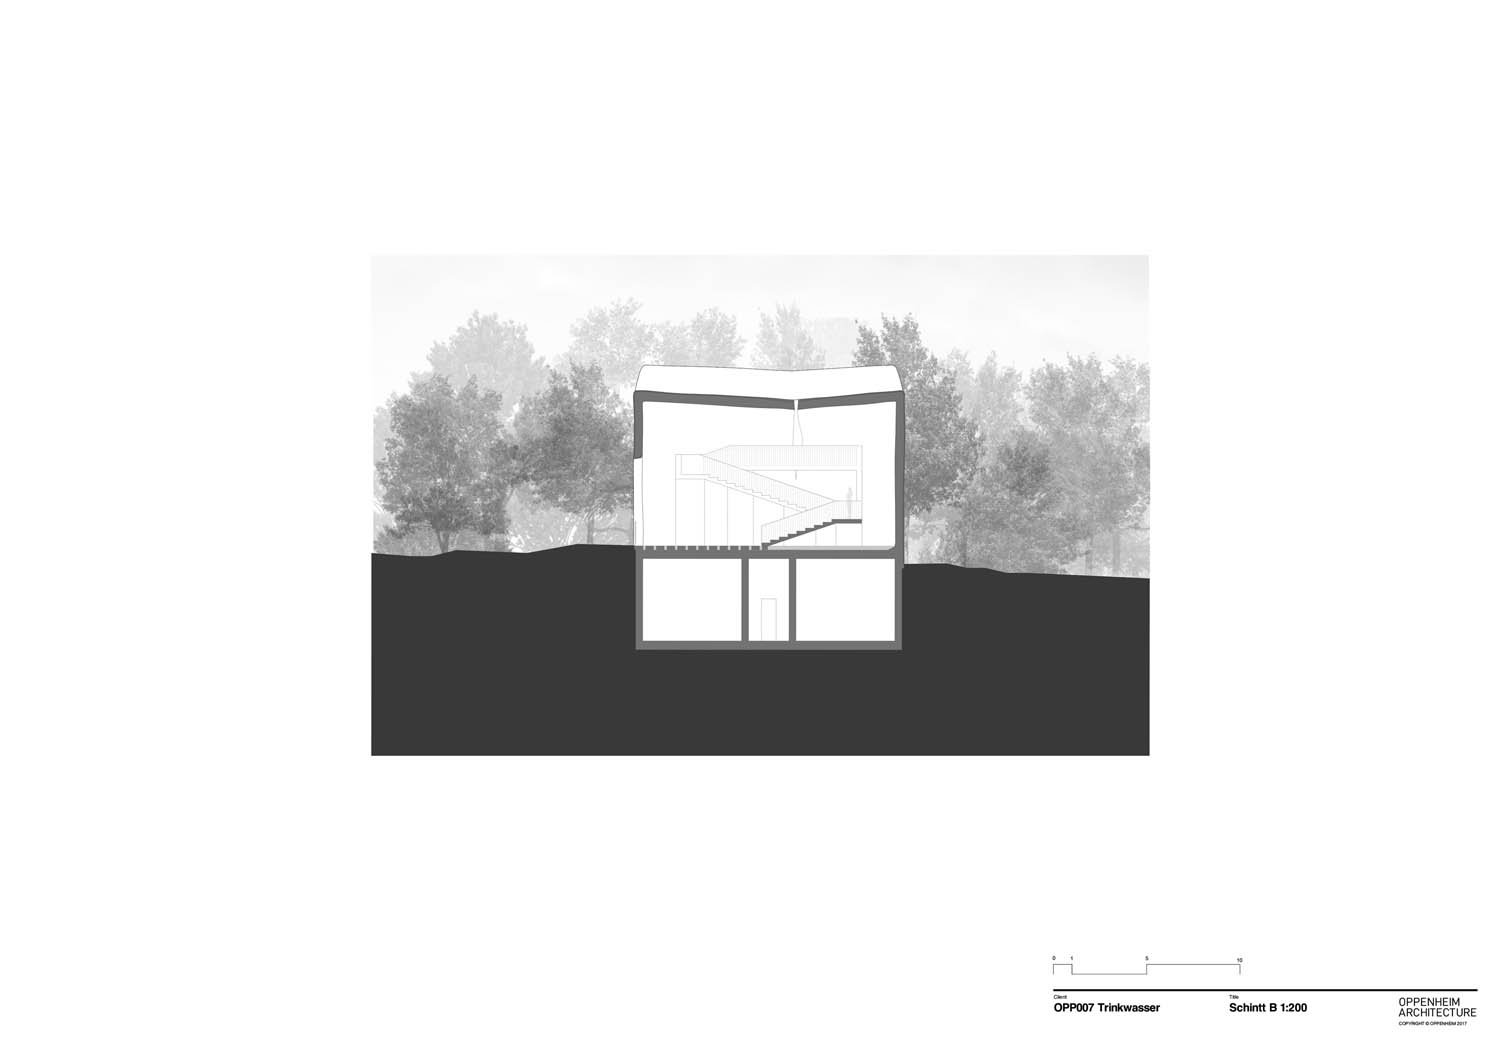 Section B Oppenheim Architecture}